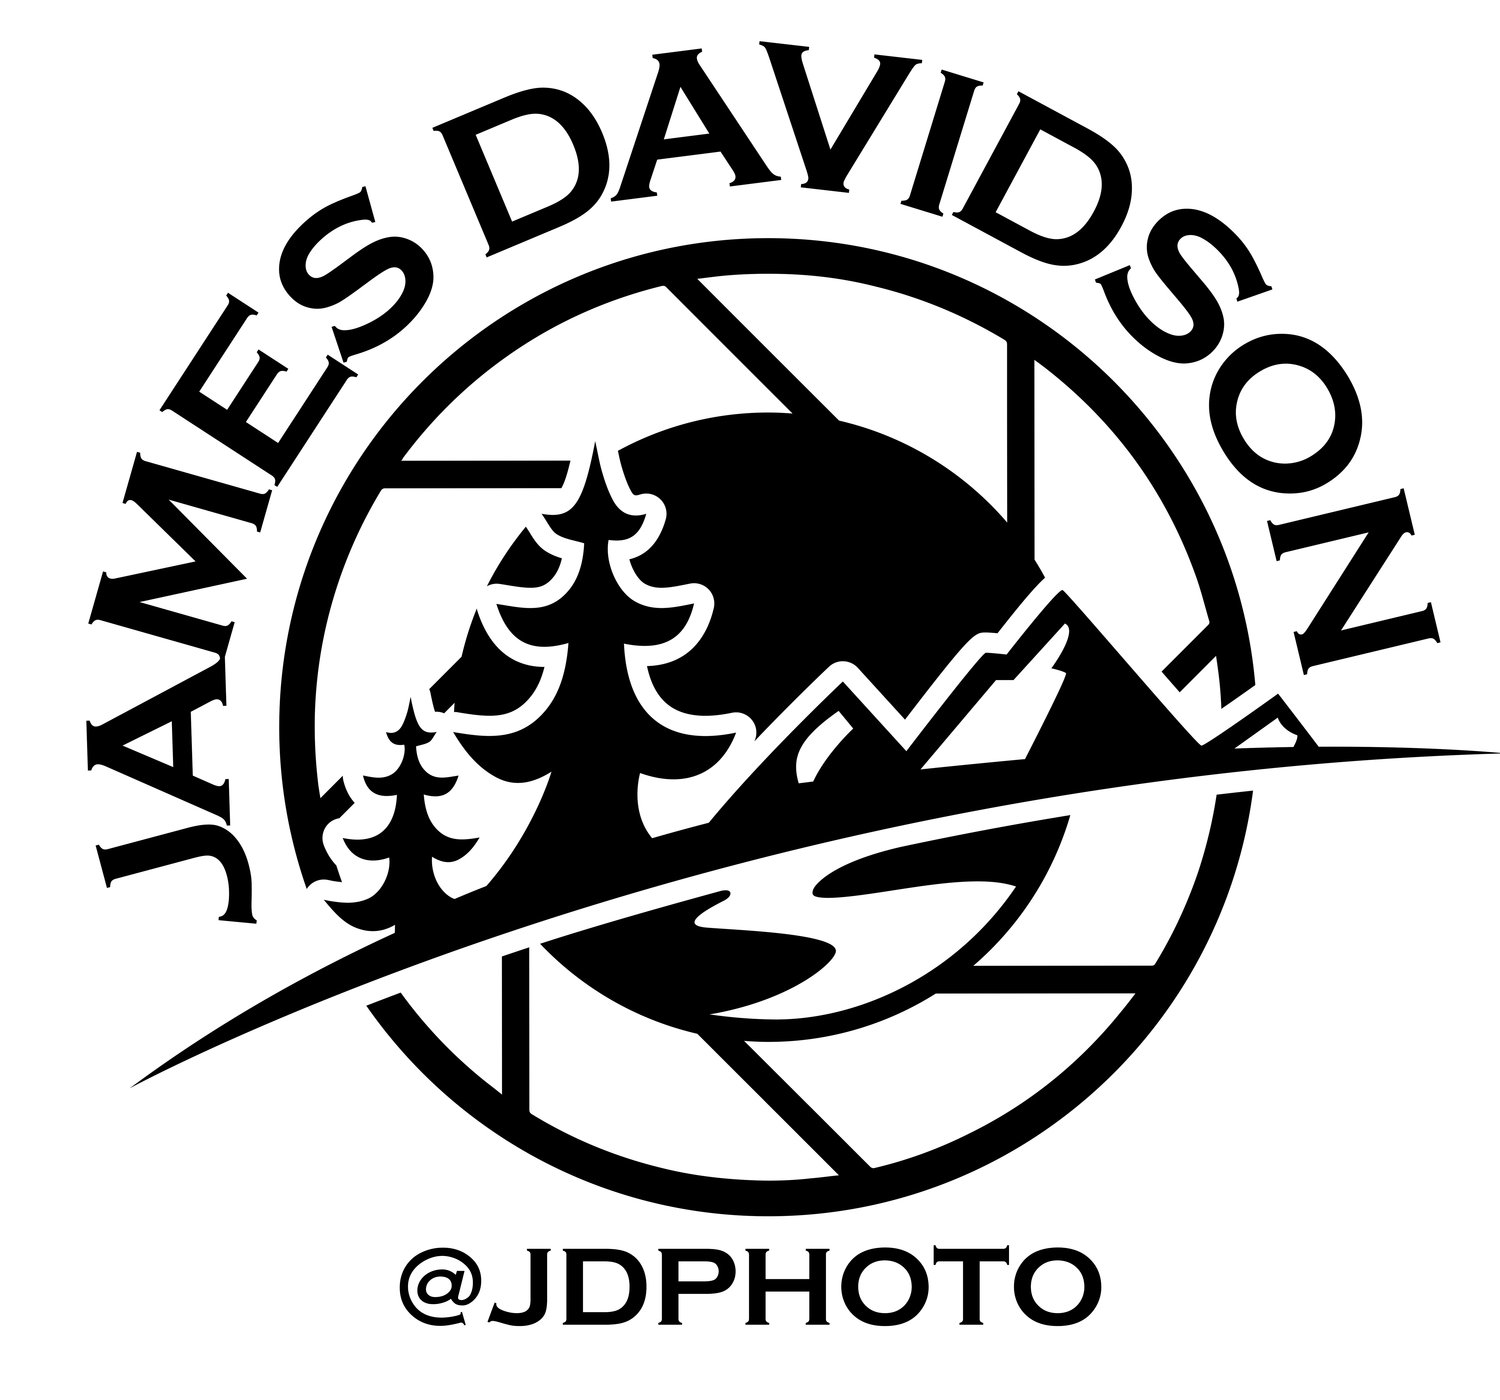 James Davidson Photography